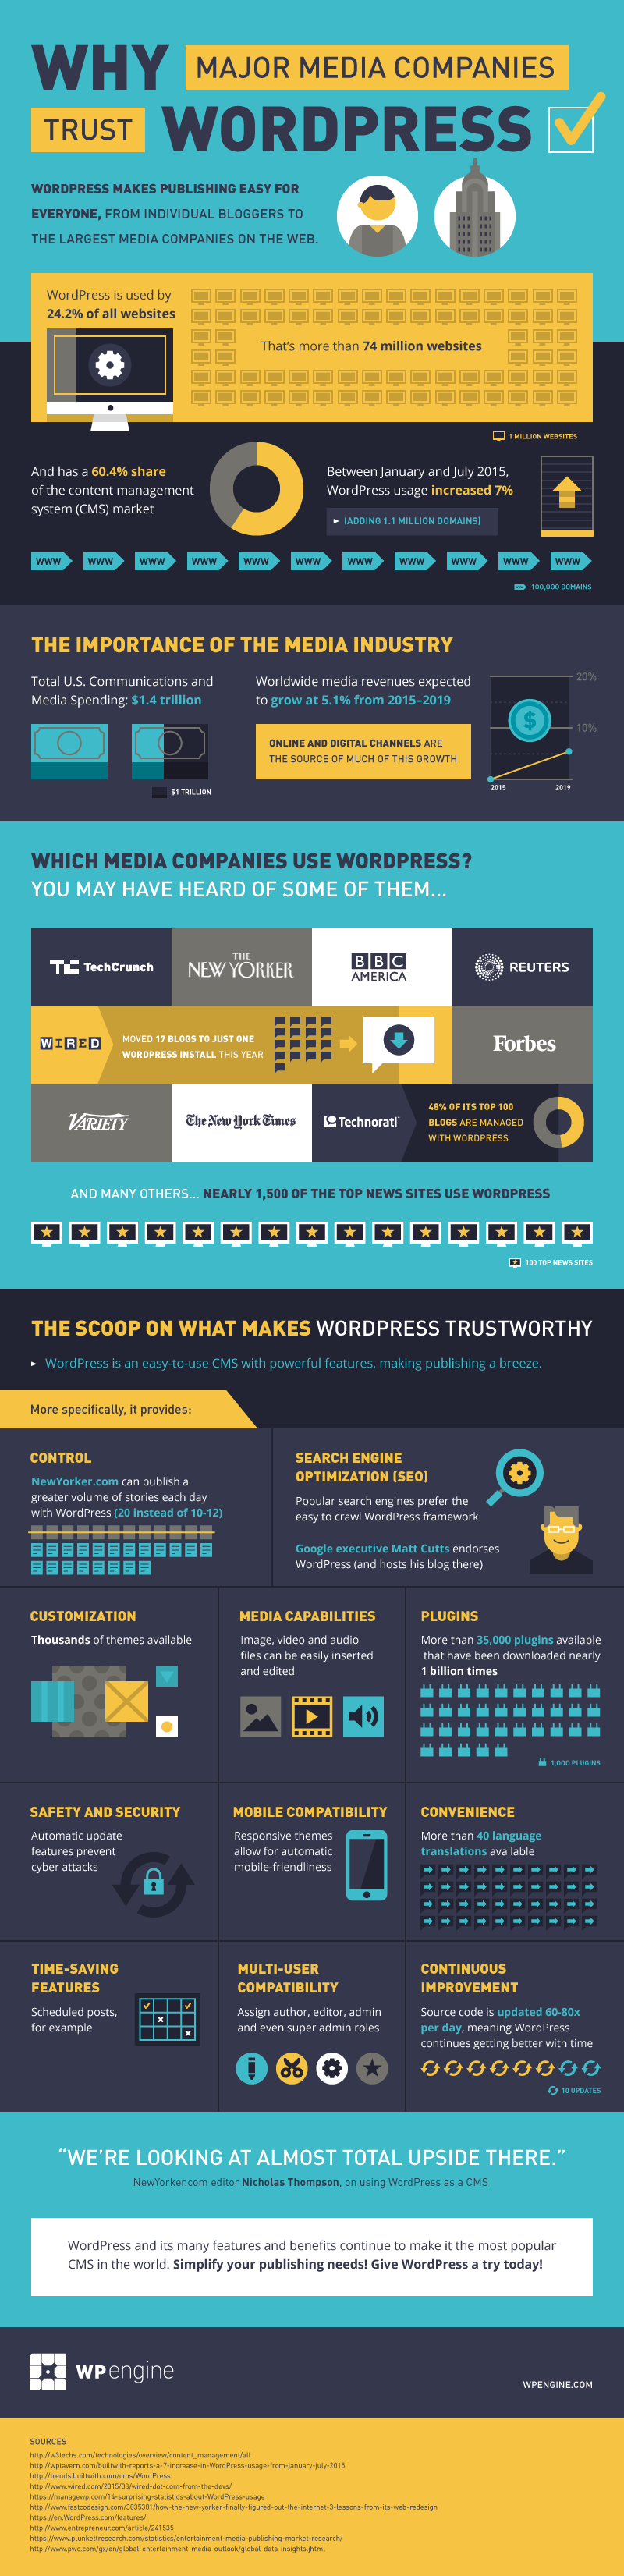 Why Major Media Companies Trust WordPress - Infographic